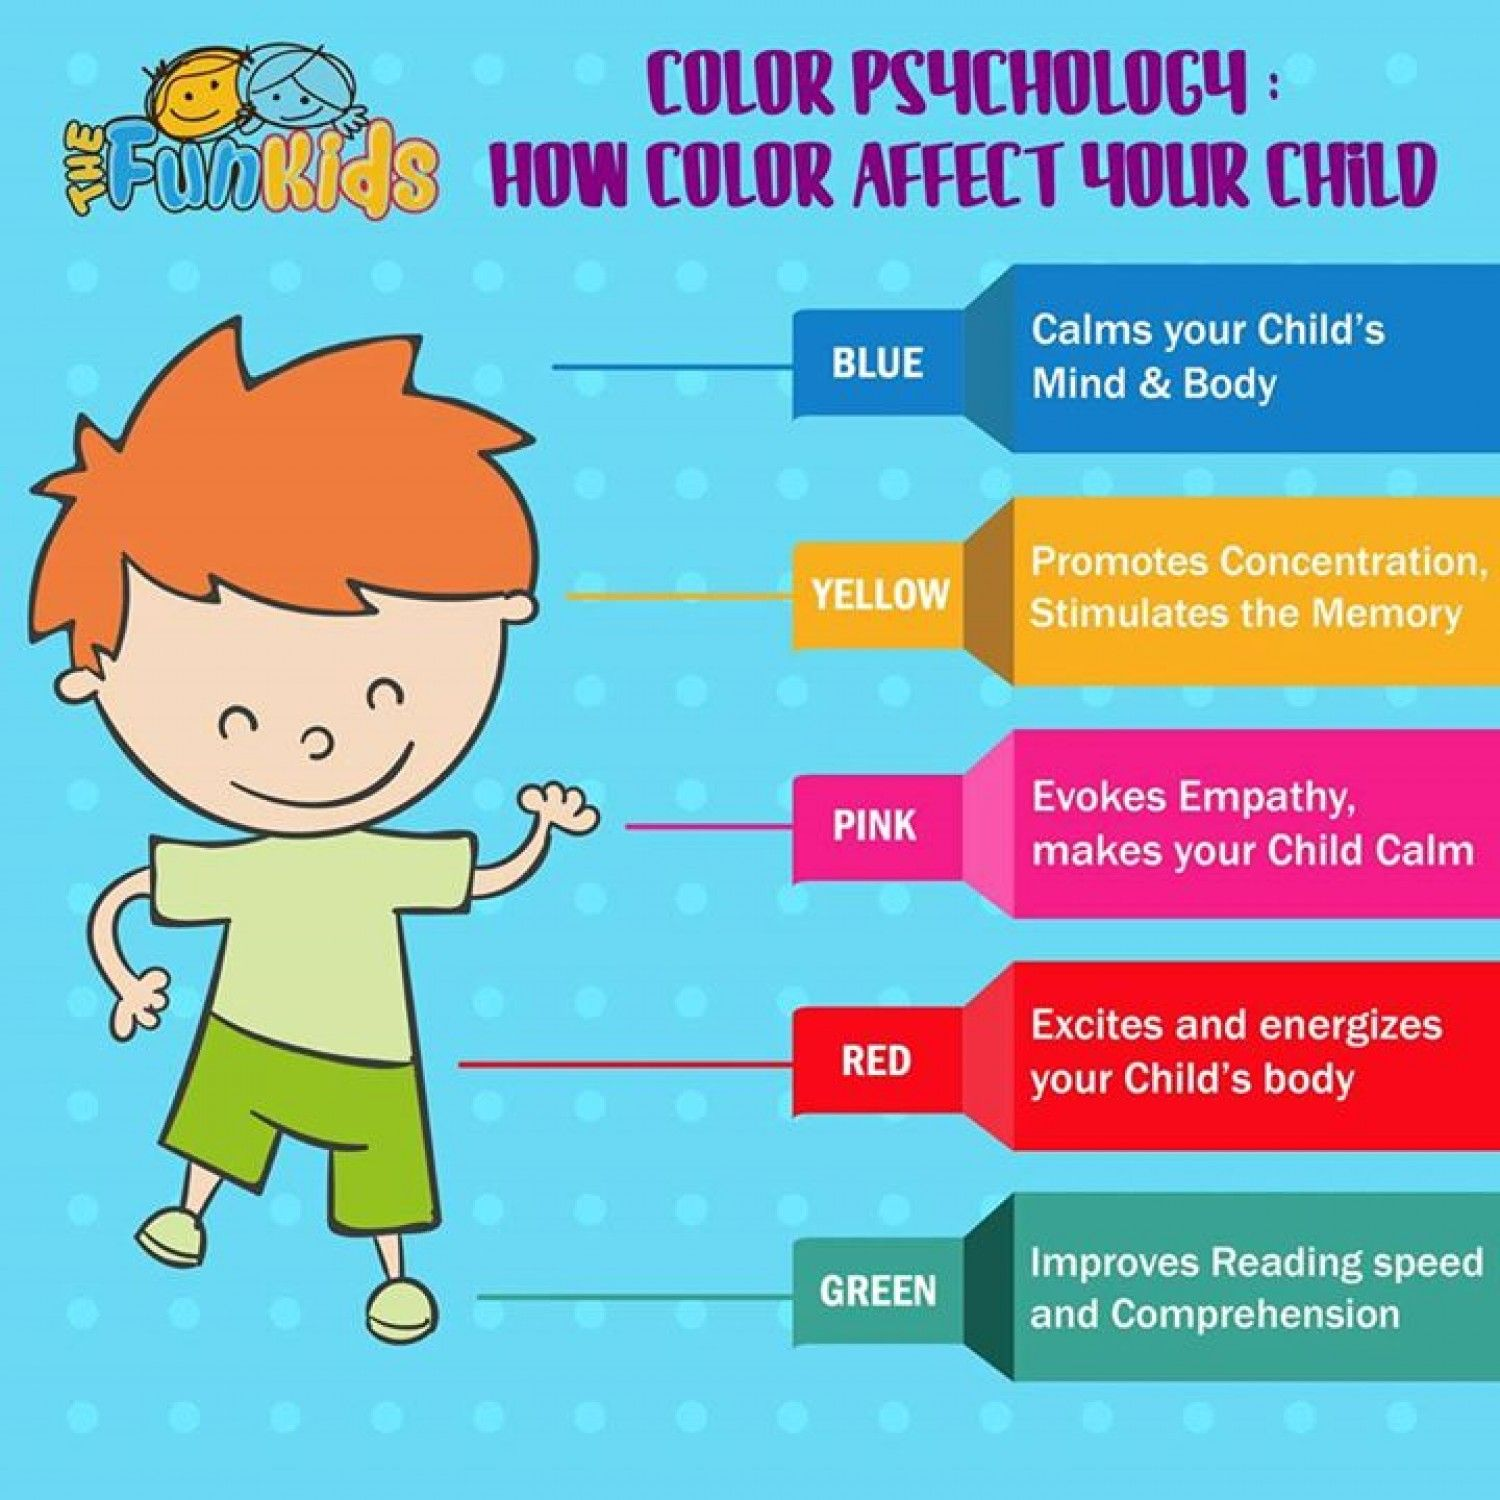 color psychology - the effect of color on your child infographic